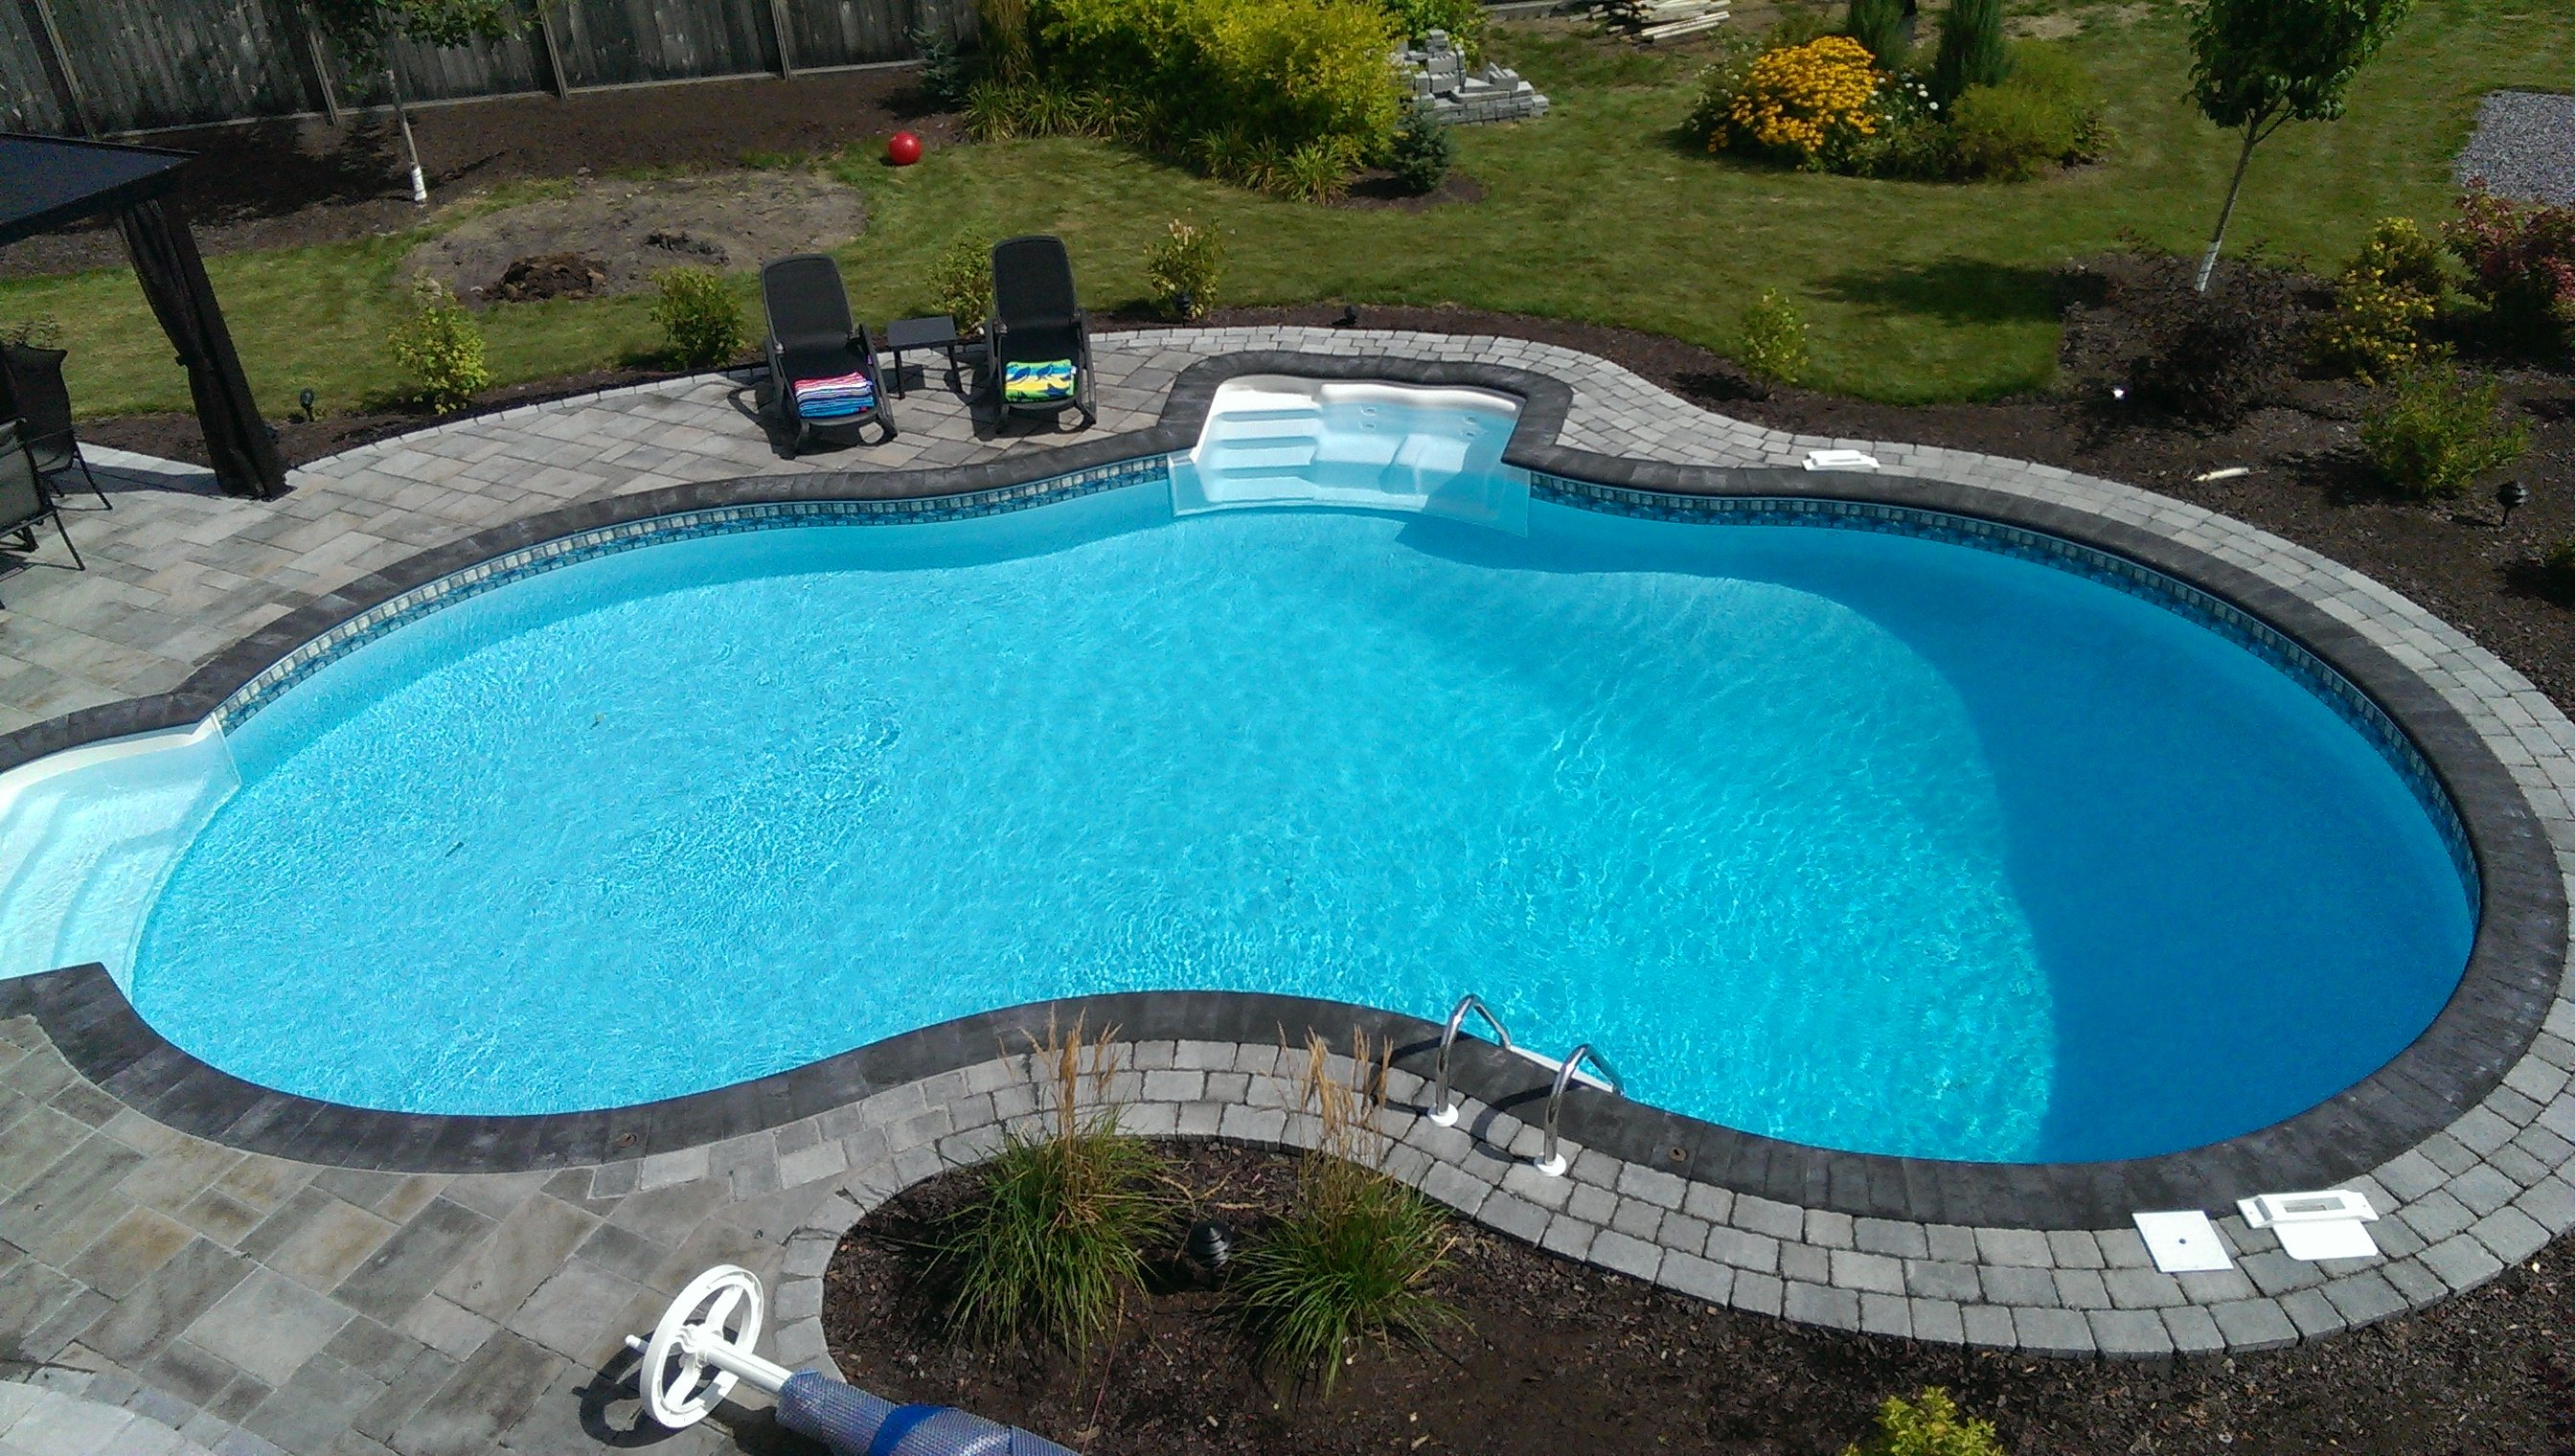 Ottawa swimming pool blog by campbell pools for California private swimming pool code